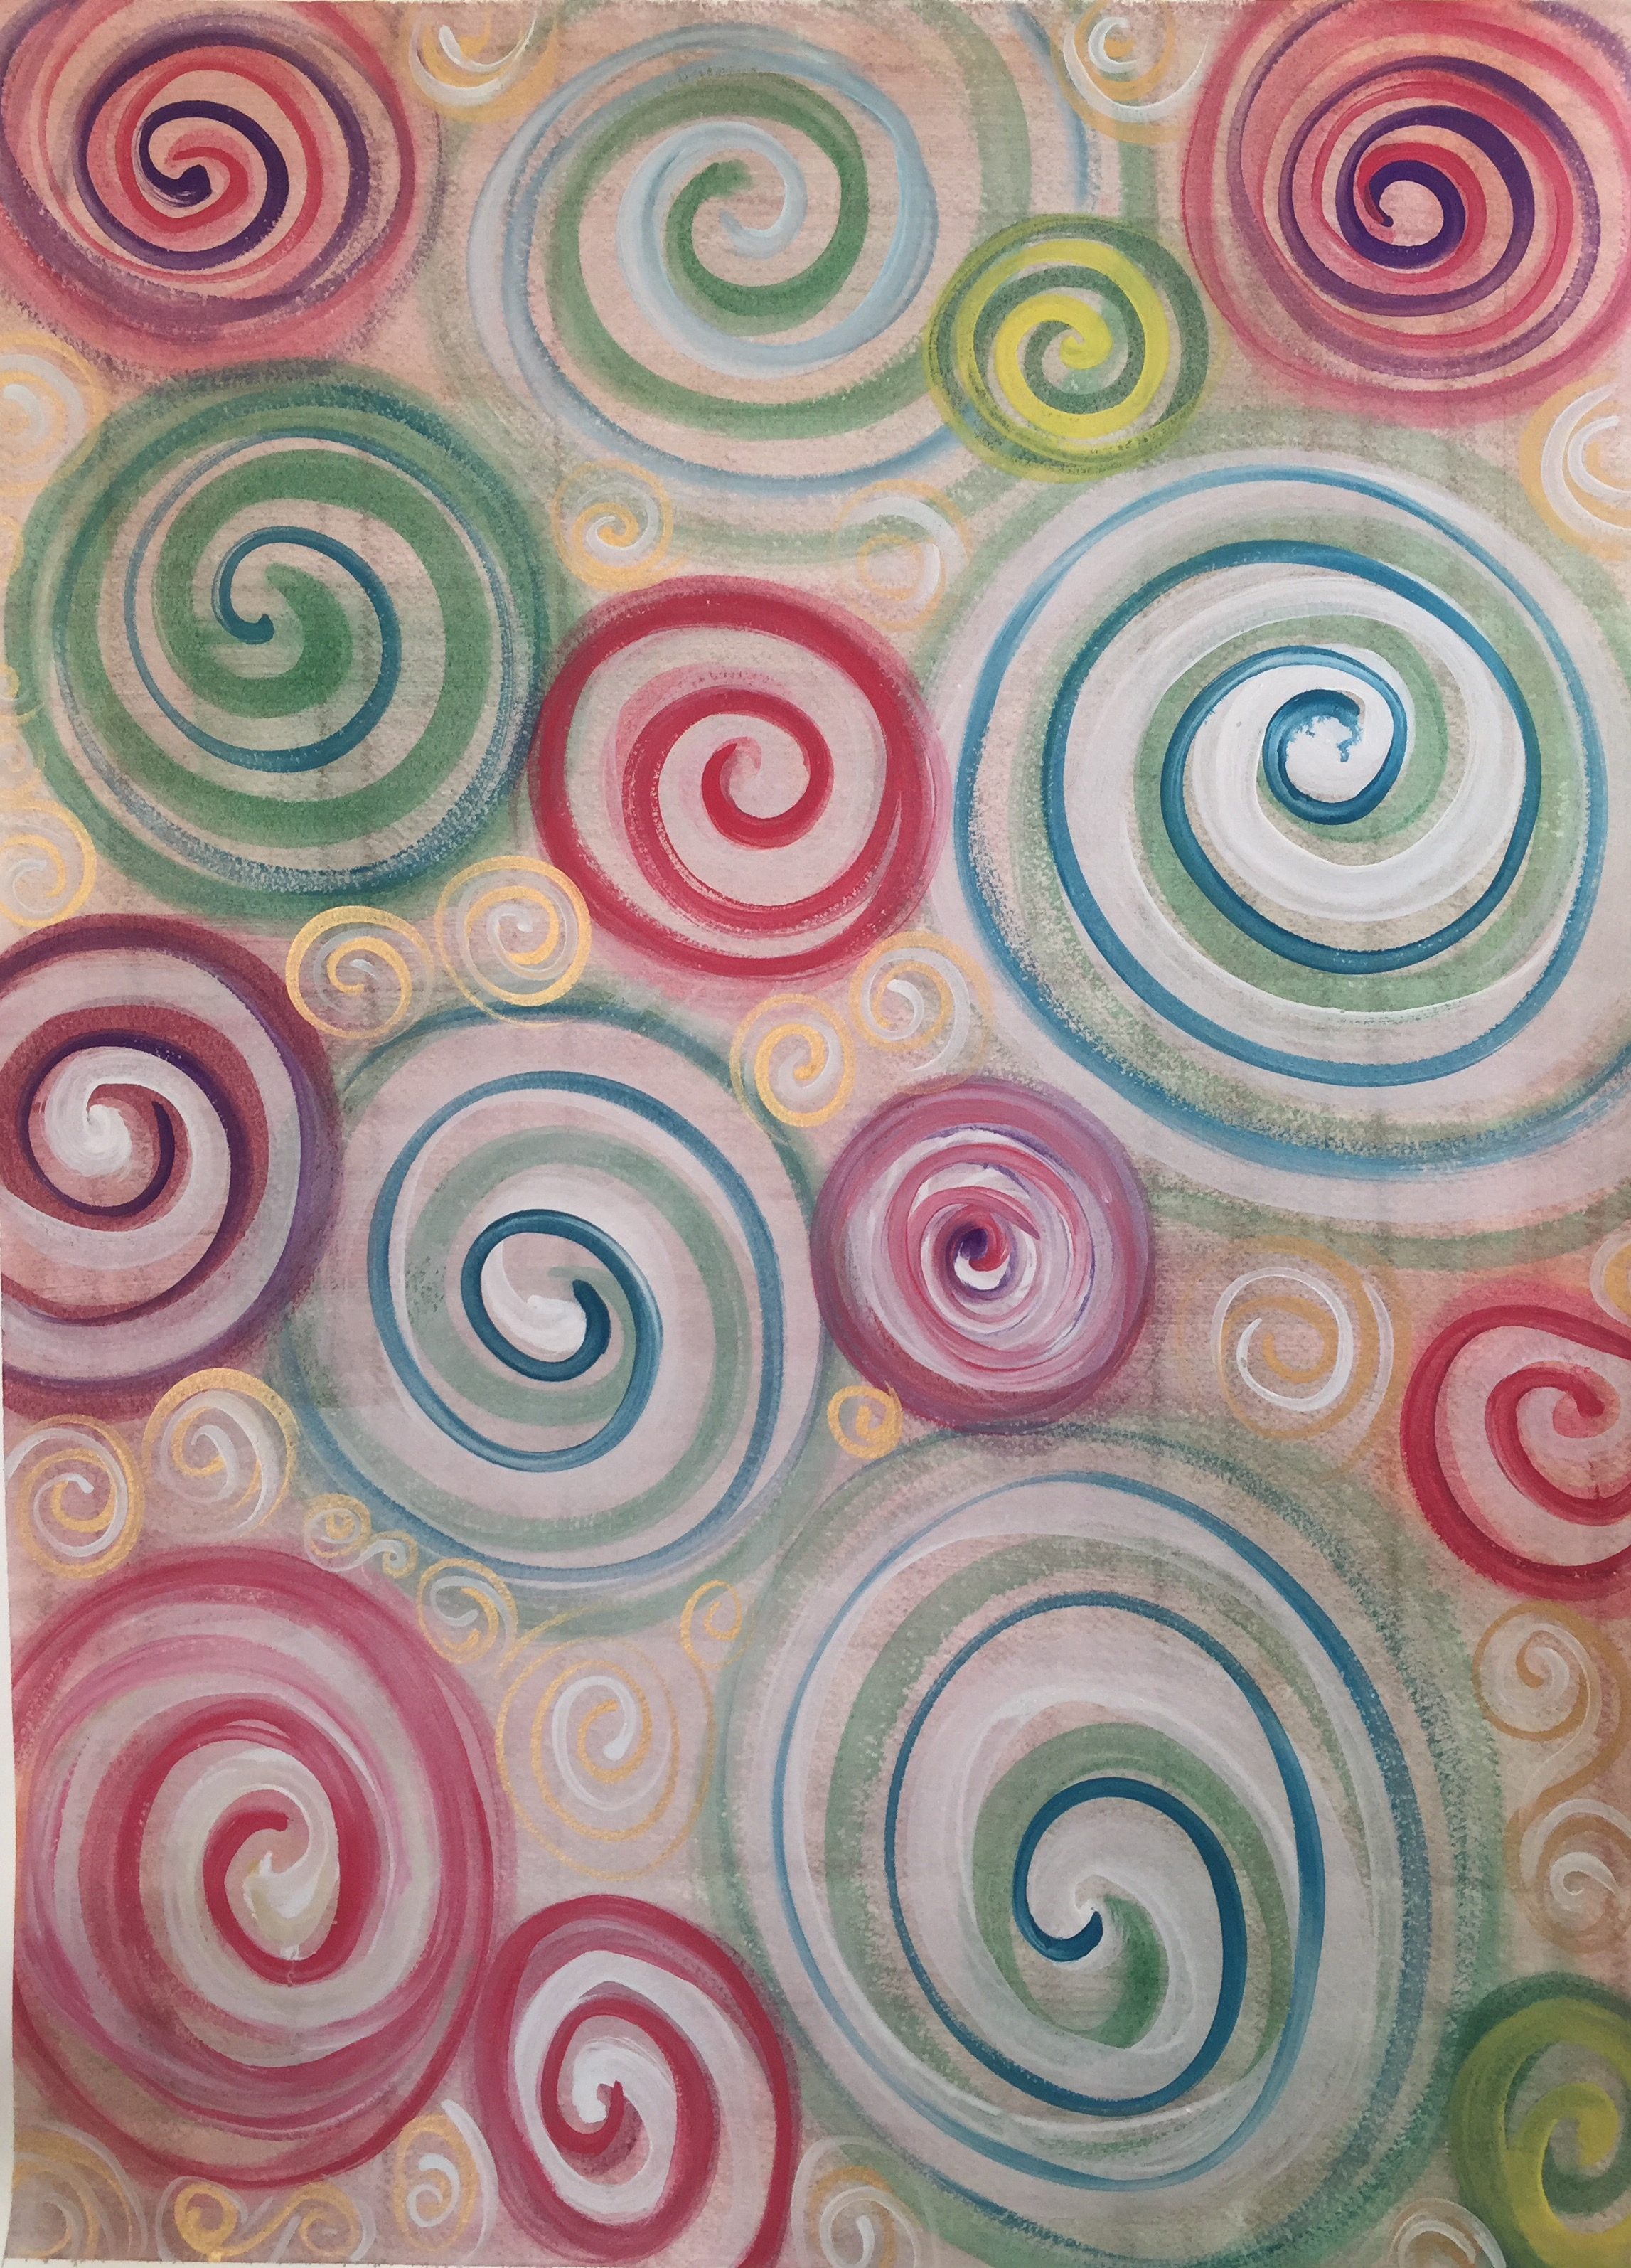 Swirly wrap